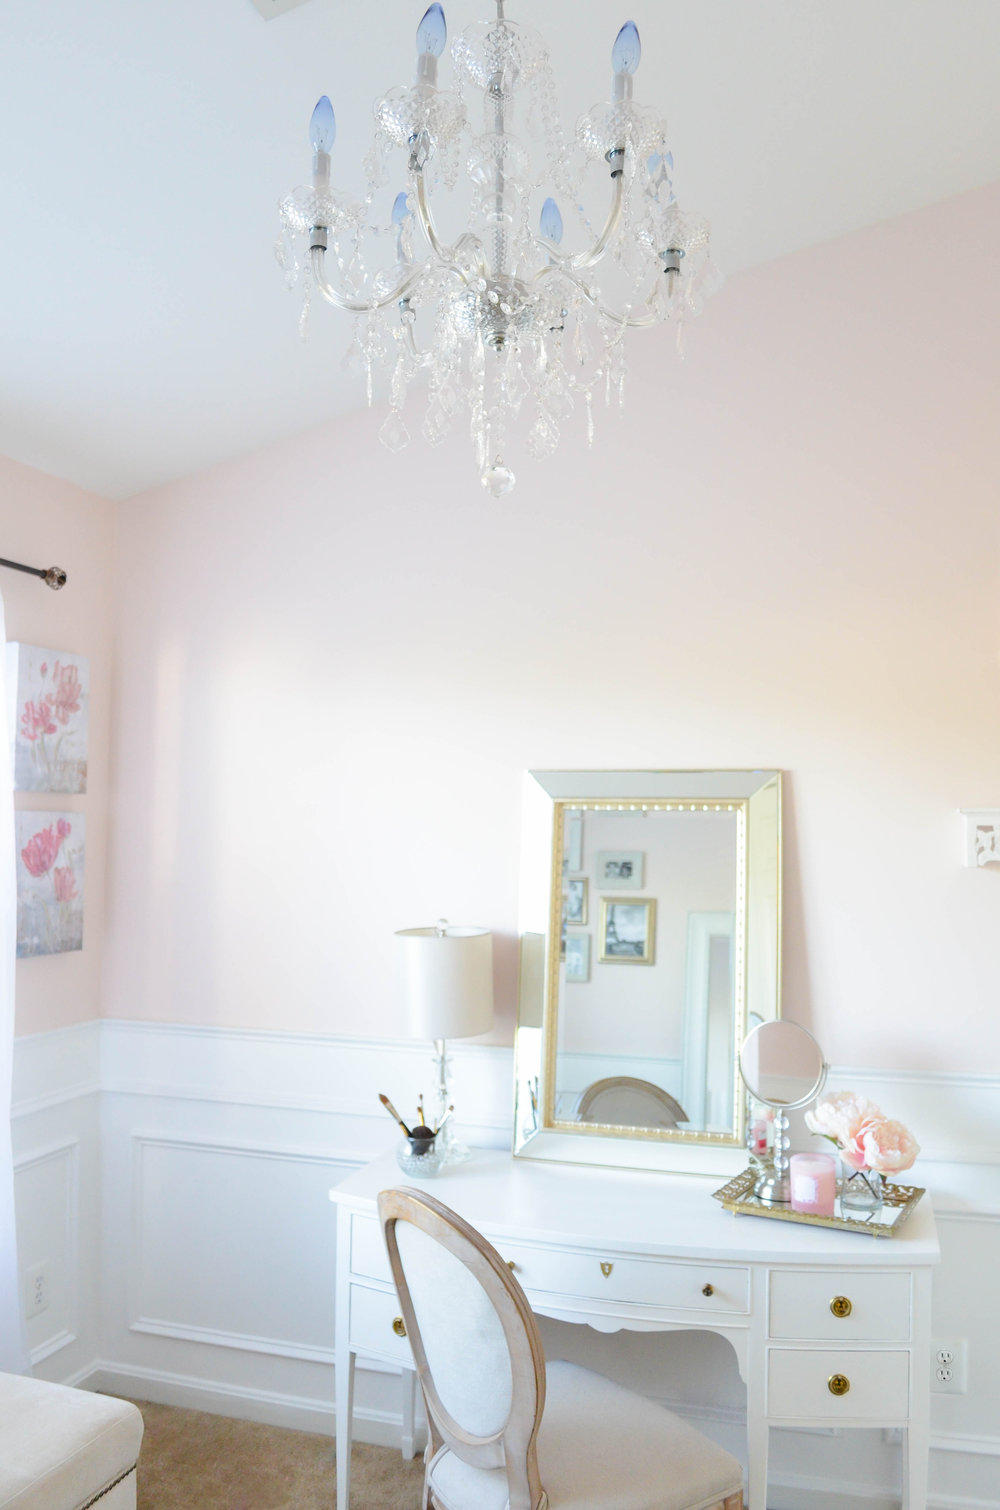 This elegant Parisian inspired Beauty Room is the perfect retreat for the lady of the house to escape with a glass of wine or a pot of tea. The impeccable white wainscoting compliments the soft pink walls and Parisian style decor. A perfectly placed white vanity makeup table adorned with a soft gold beveled mirror is the perfect place to apply those finishing touches for a night out on the town!